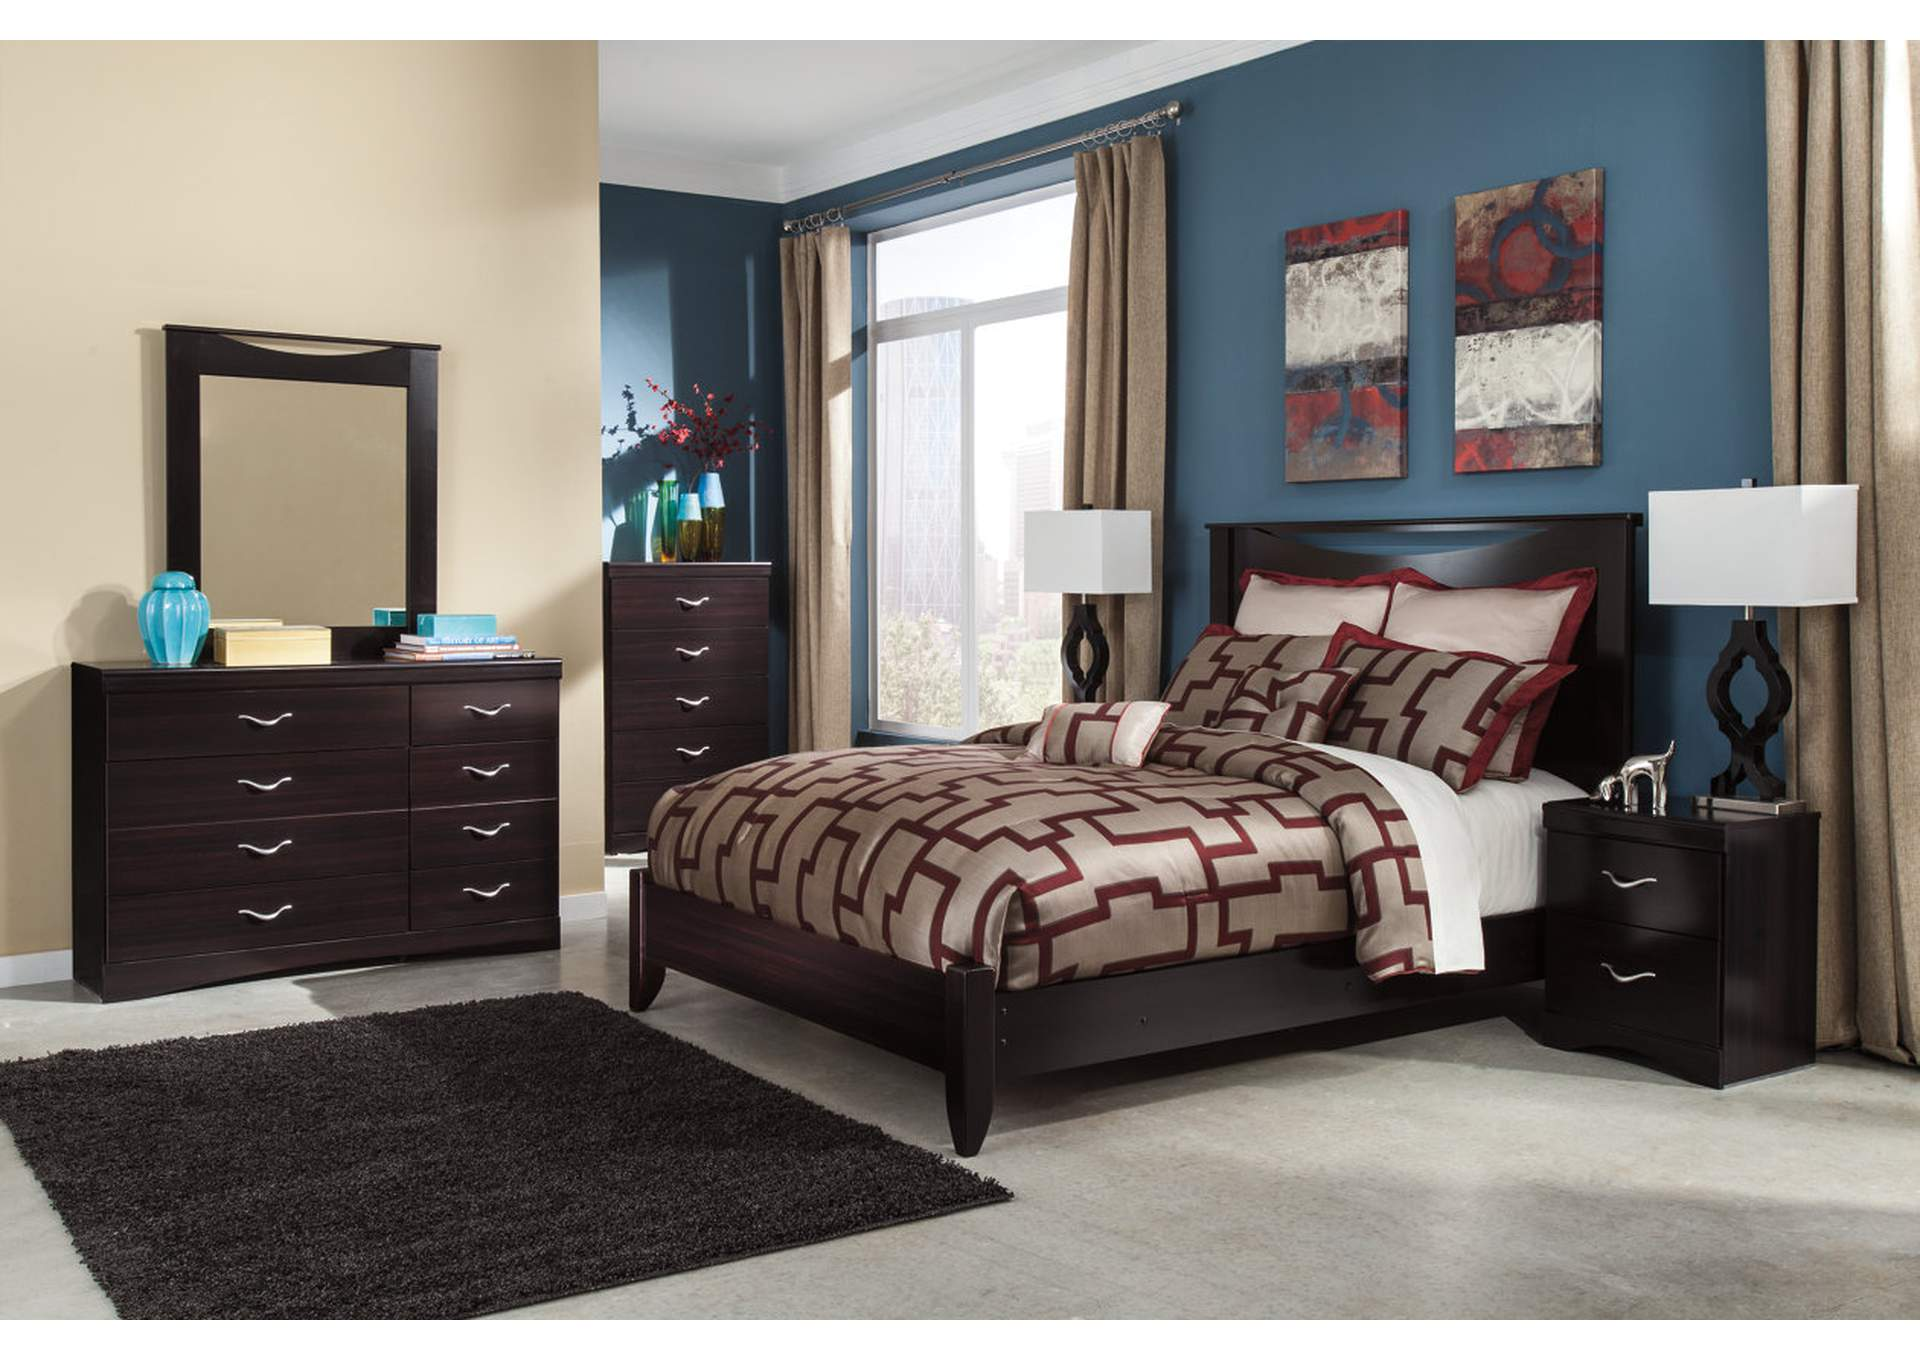 Zanbury Queen Panel Bed w/Dresser, Mirror, Drawer Chest & Nightstand,Signature Design By Ashley